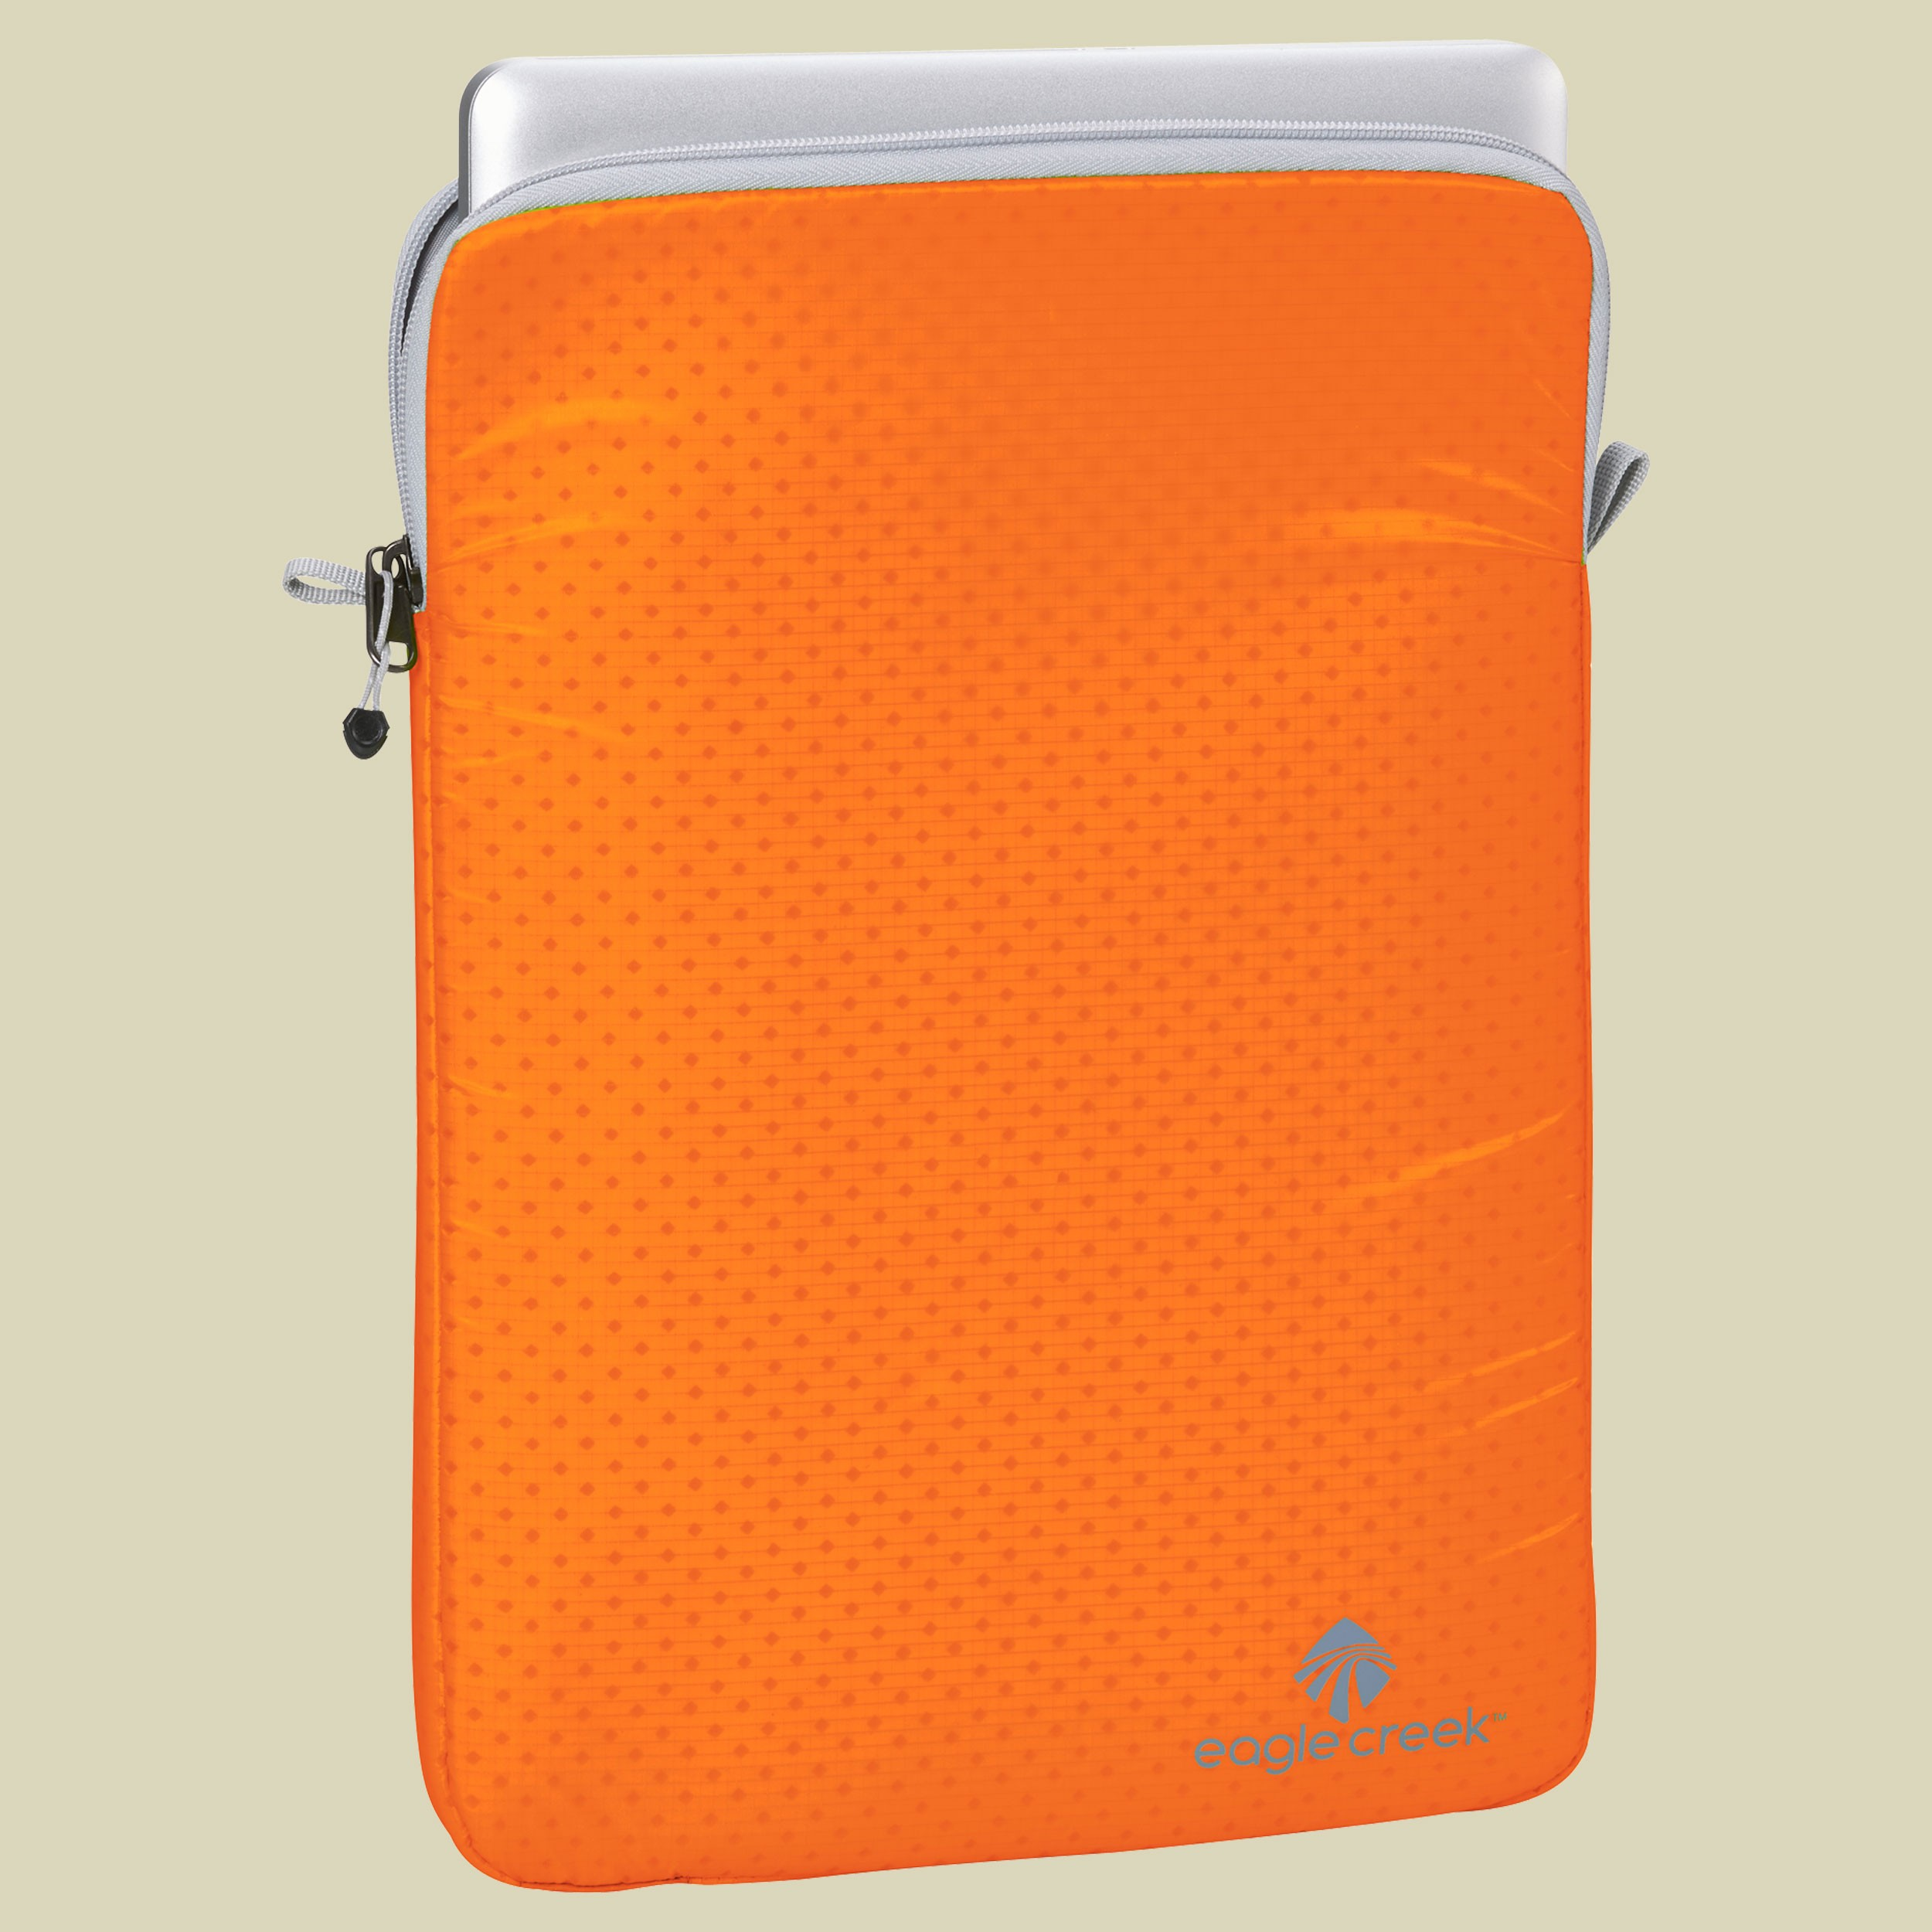 Pack-It Specter Laptop Sleeve